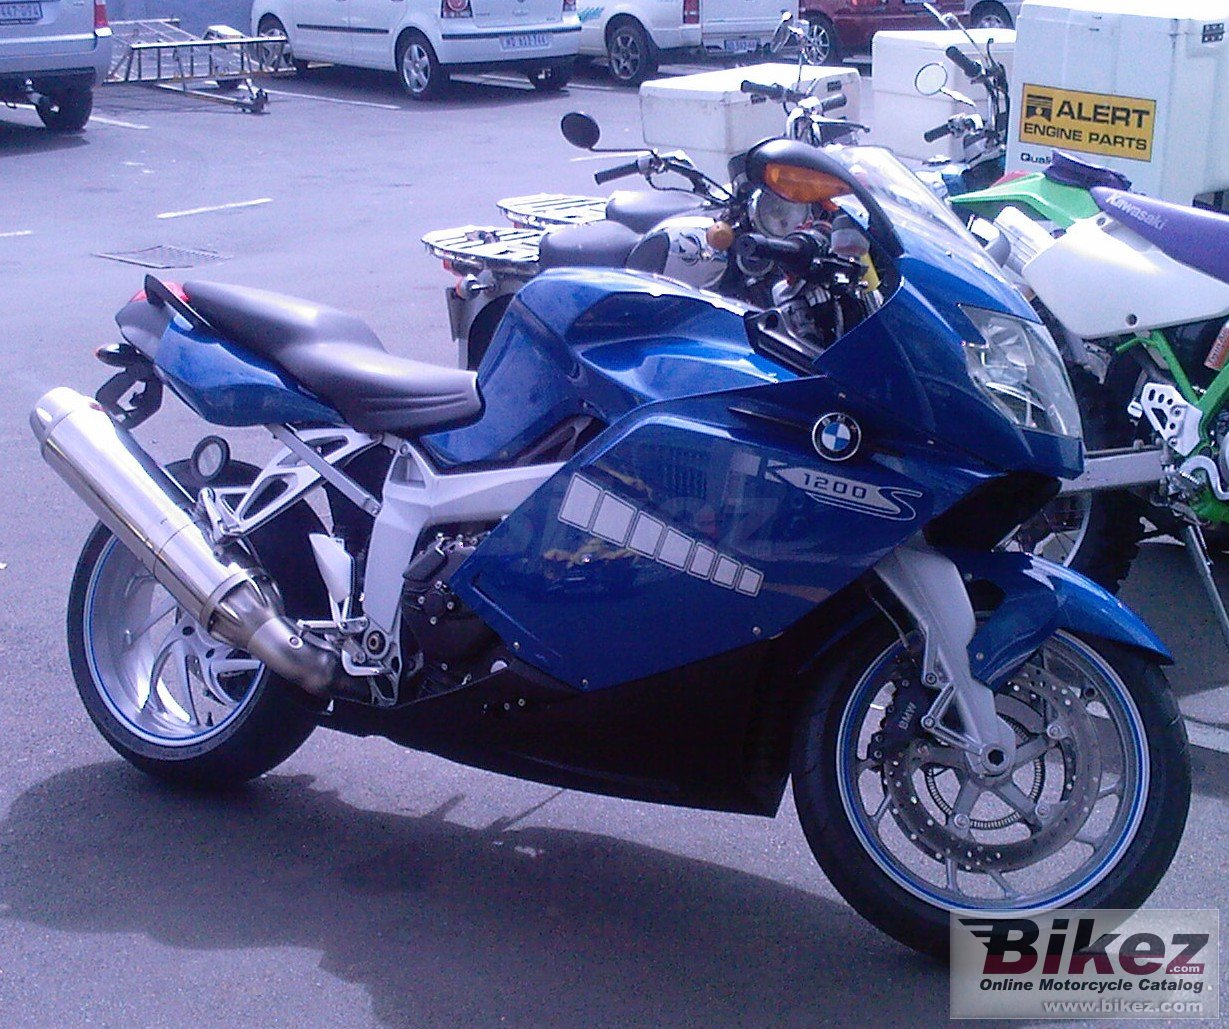 Big  k 1200 s picture and wallpaper from Bikez.com